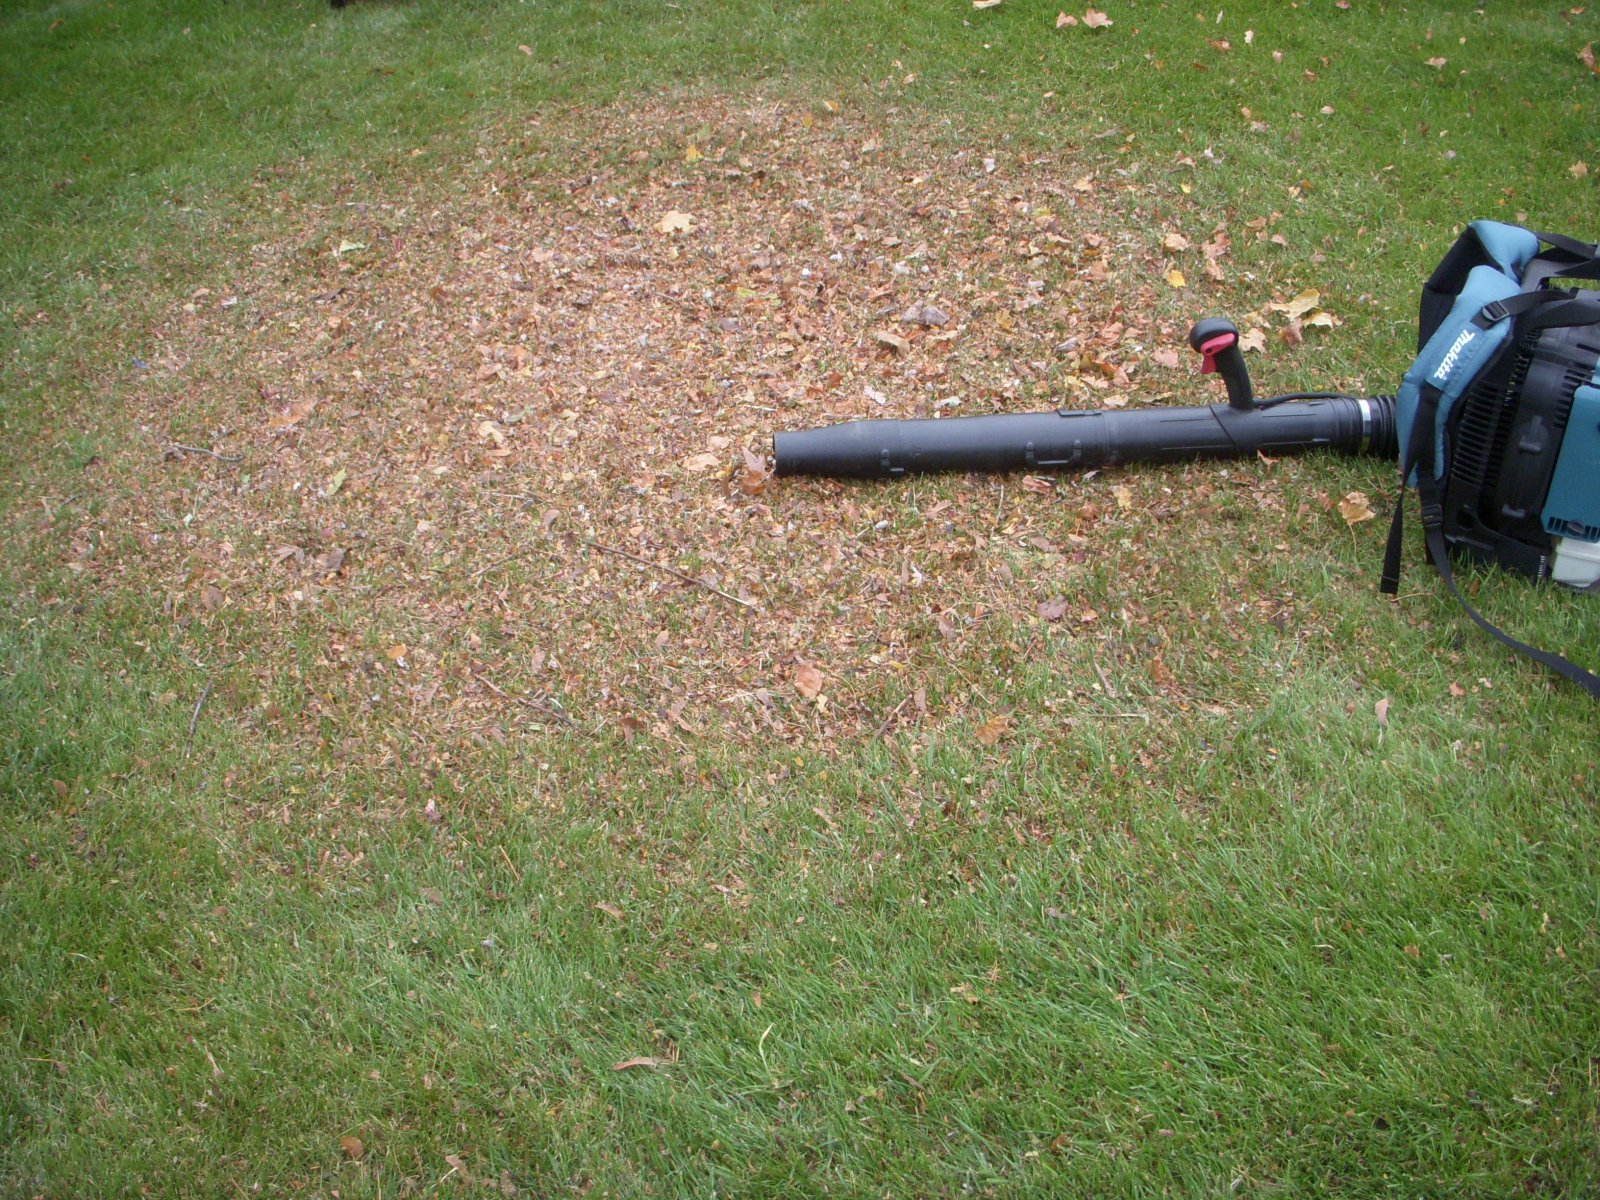 mulch shred leaves on new young grass lawn (6).JPG